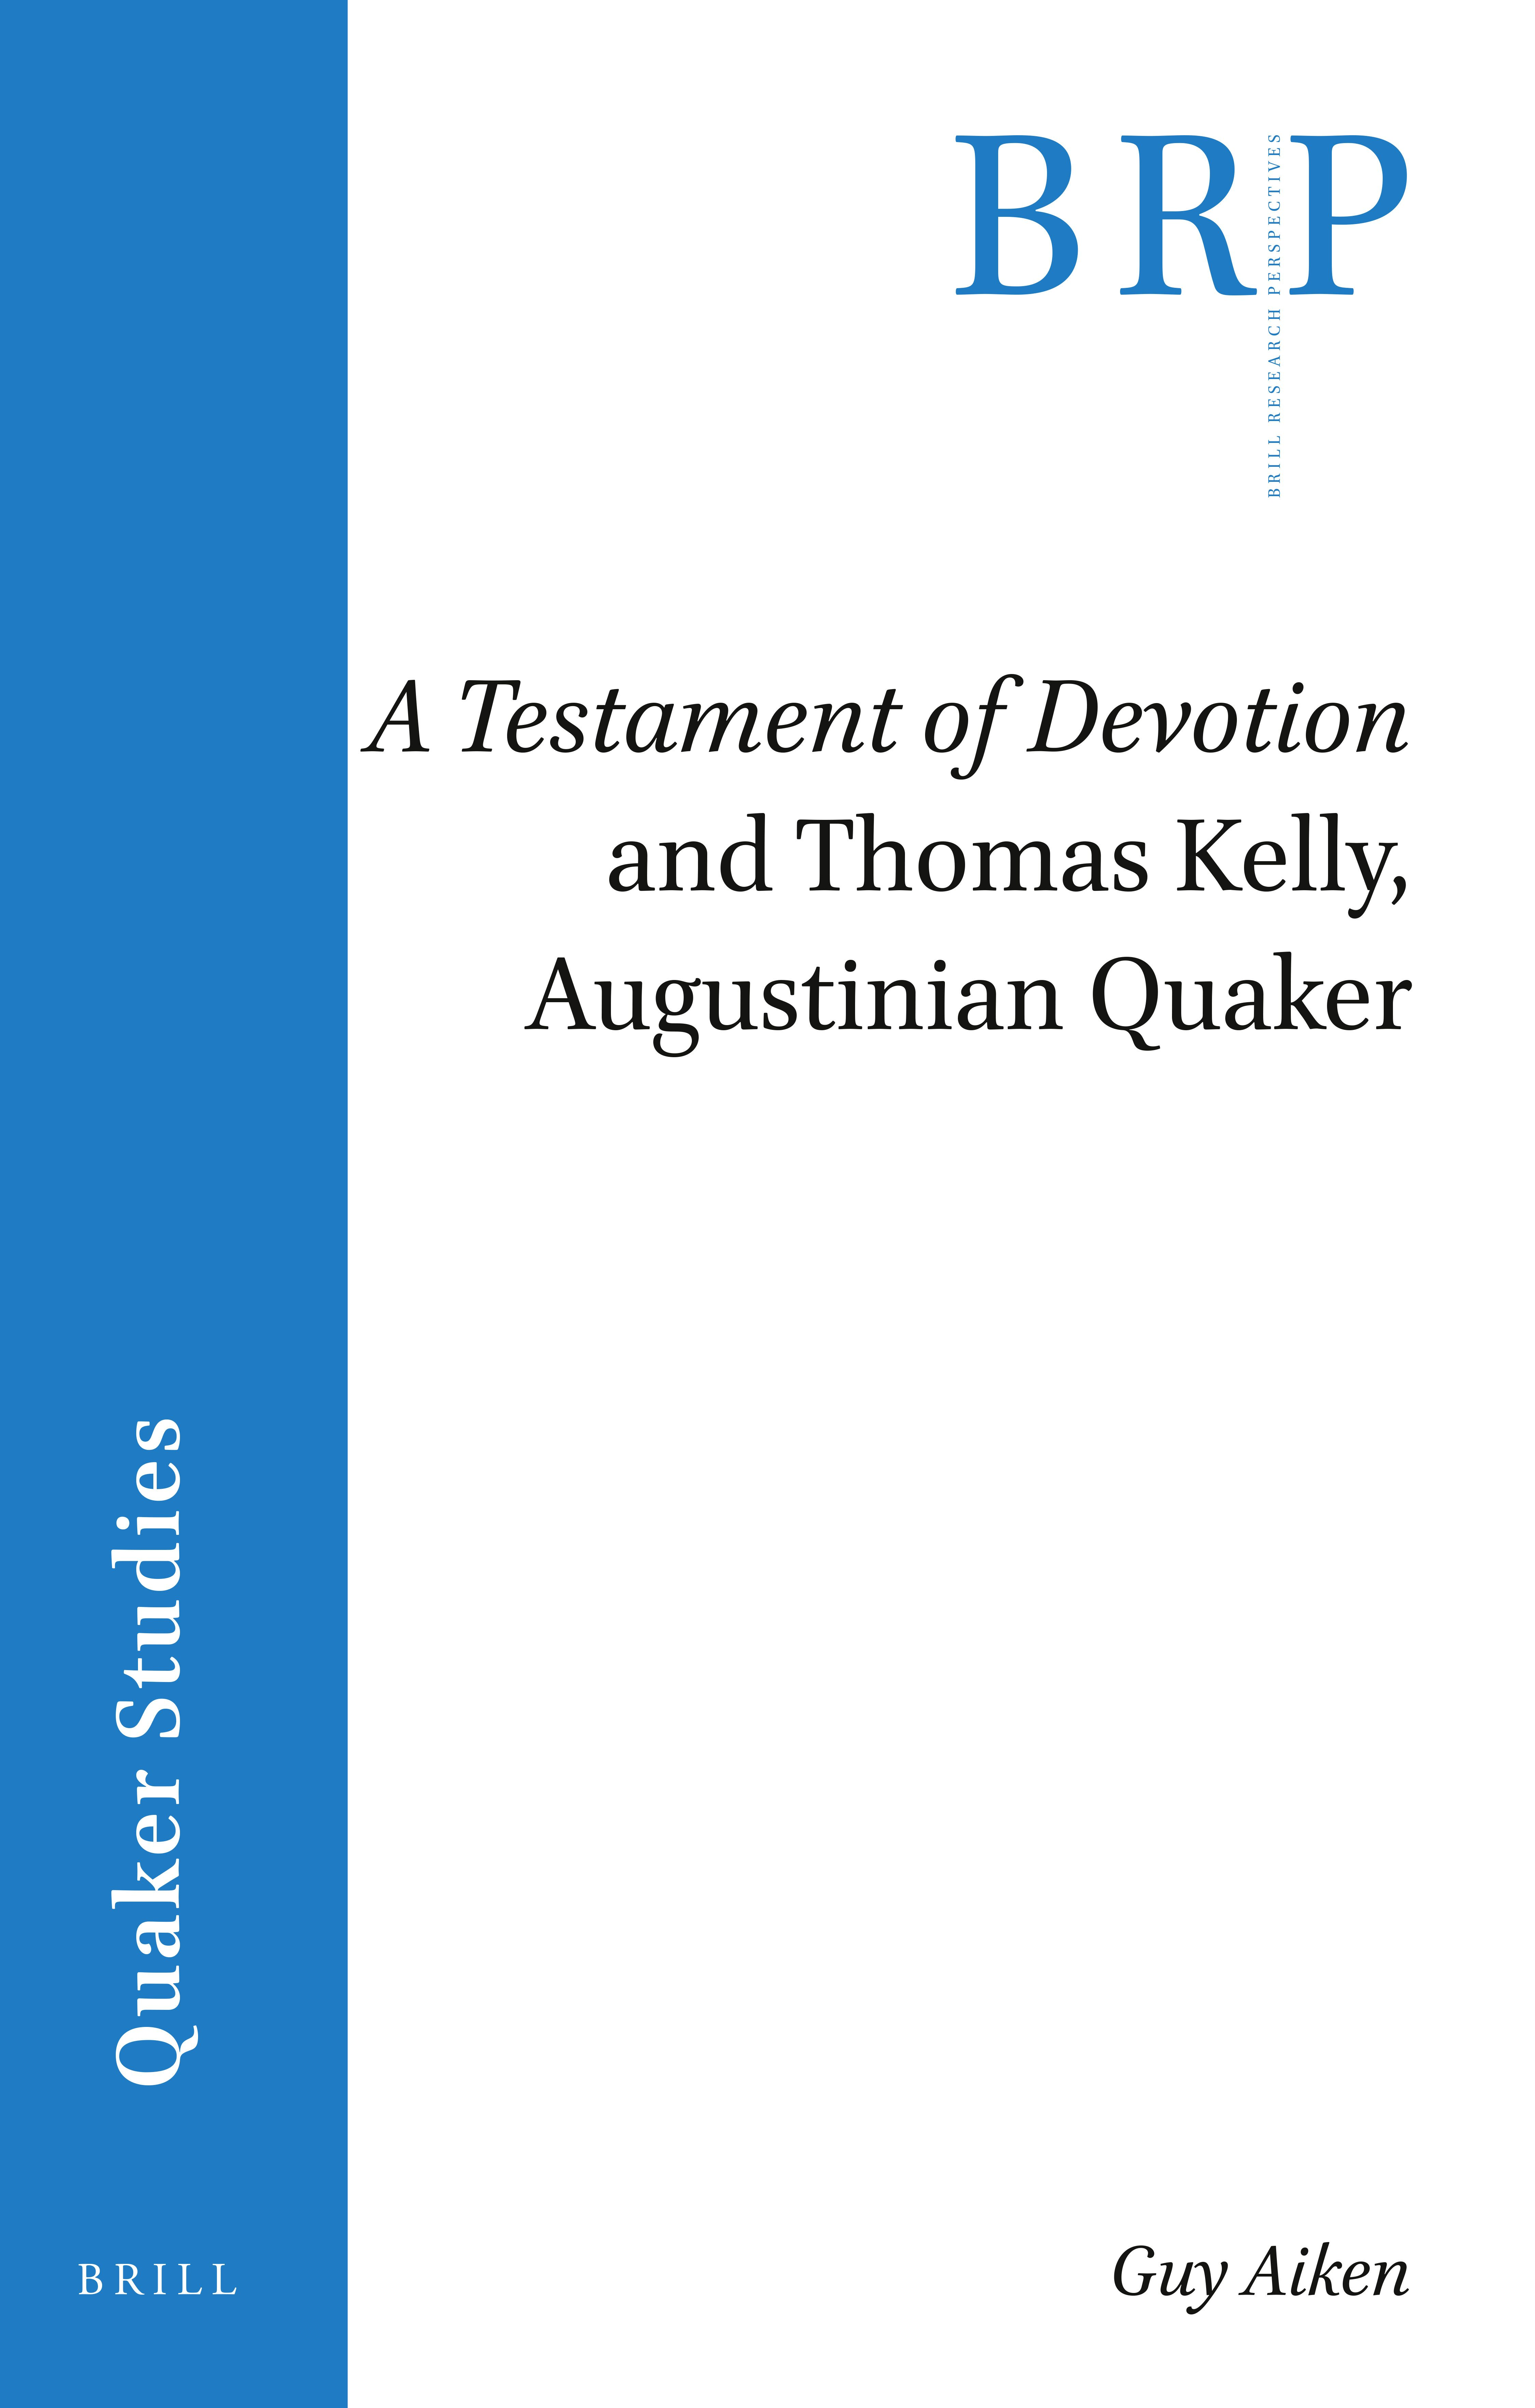 A Testament of Devotion and Thomas Kelly, Augustinian Quaker in A ...